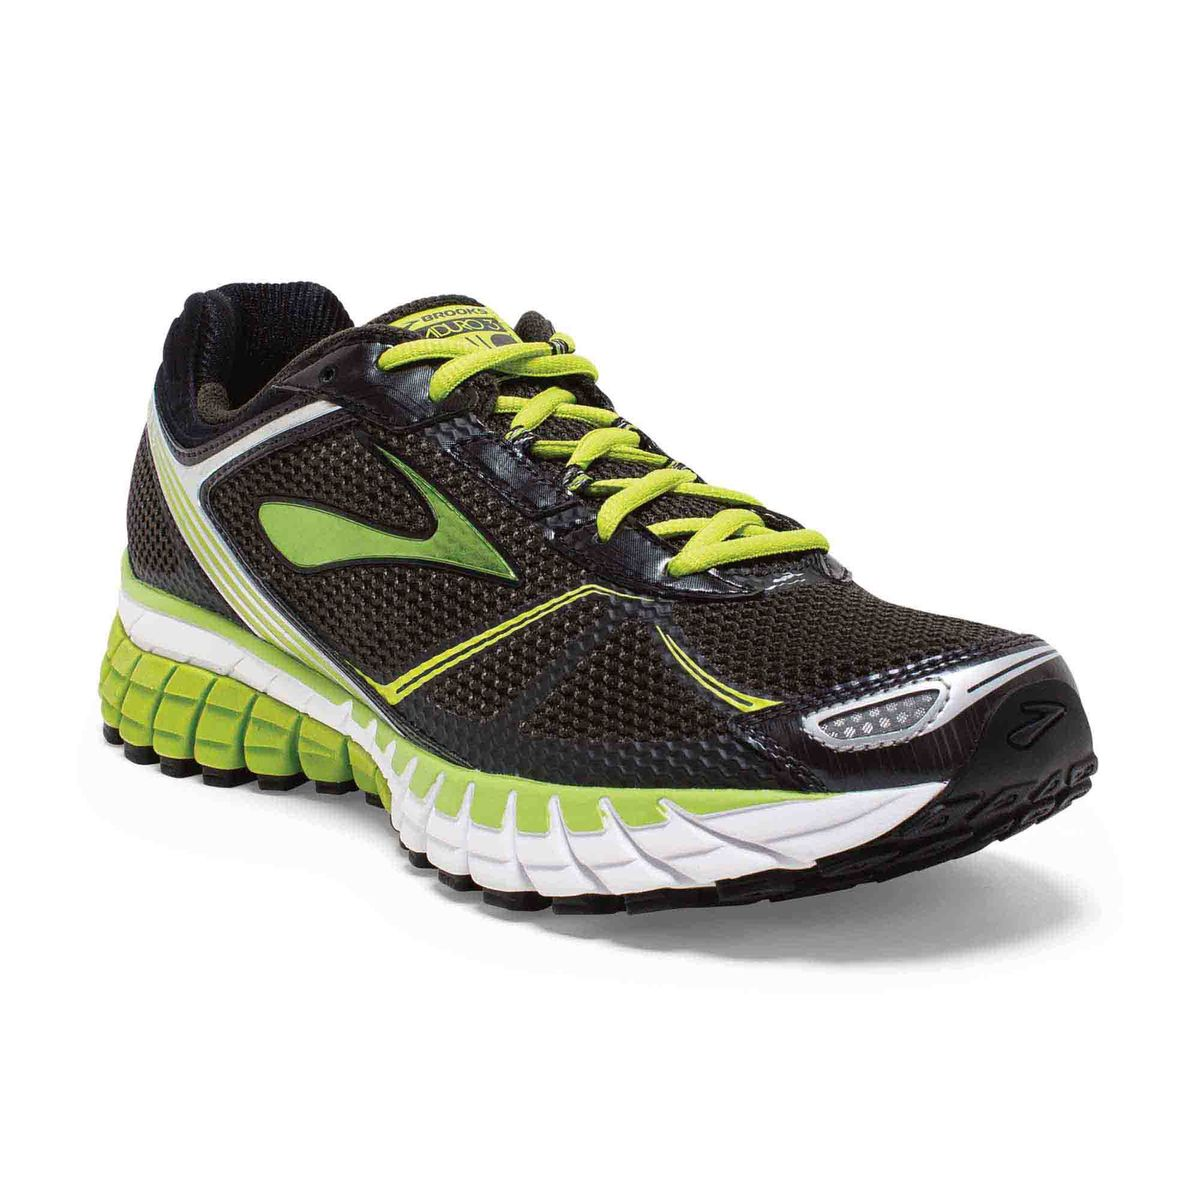 scarpa-running-brooks-aduro-3-men-007.jpg